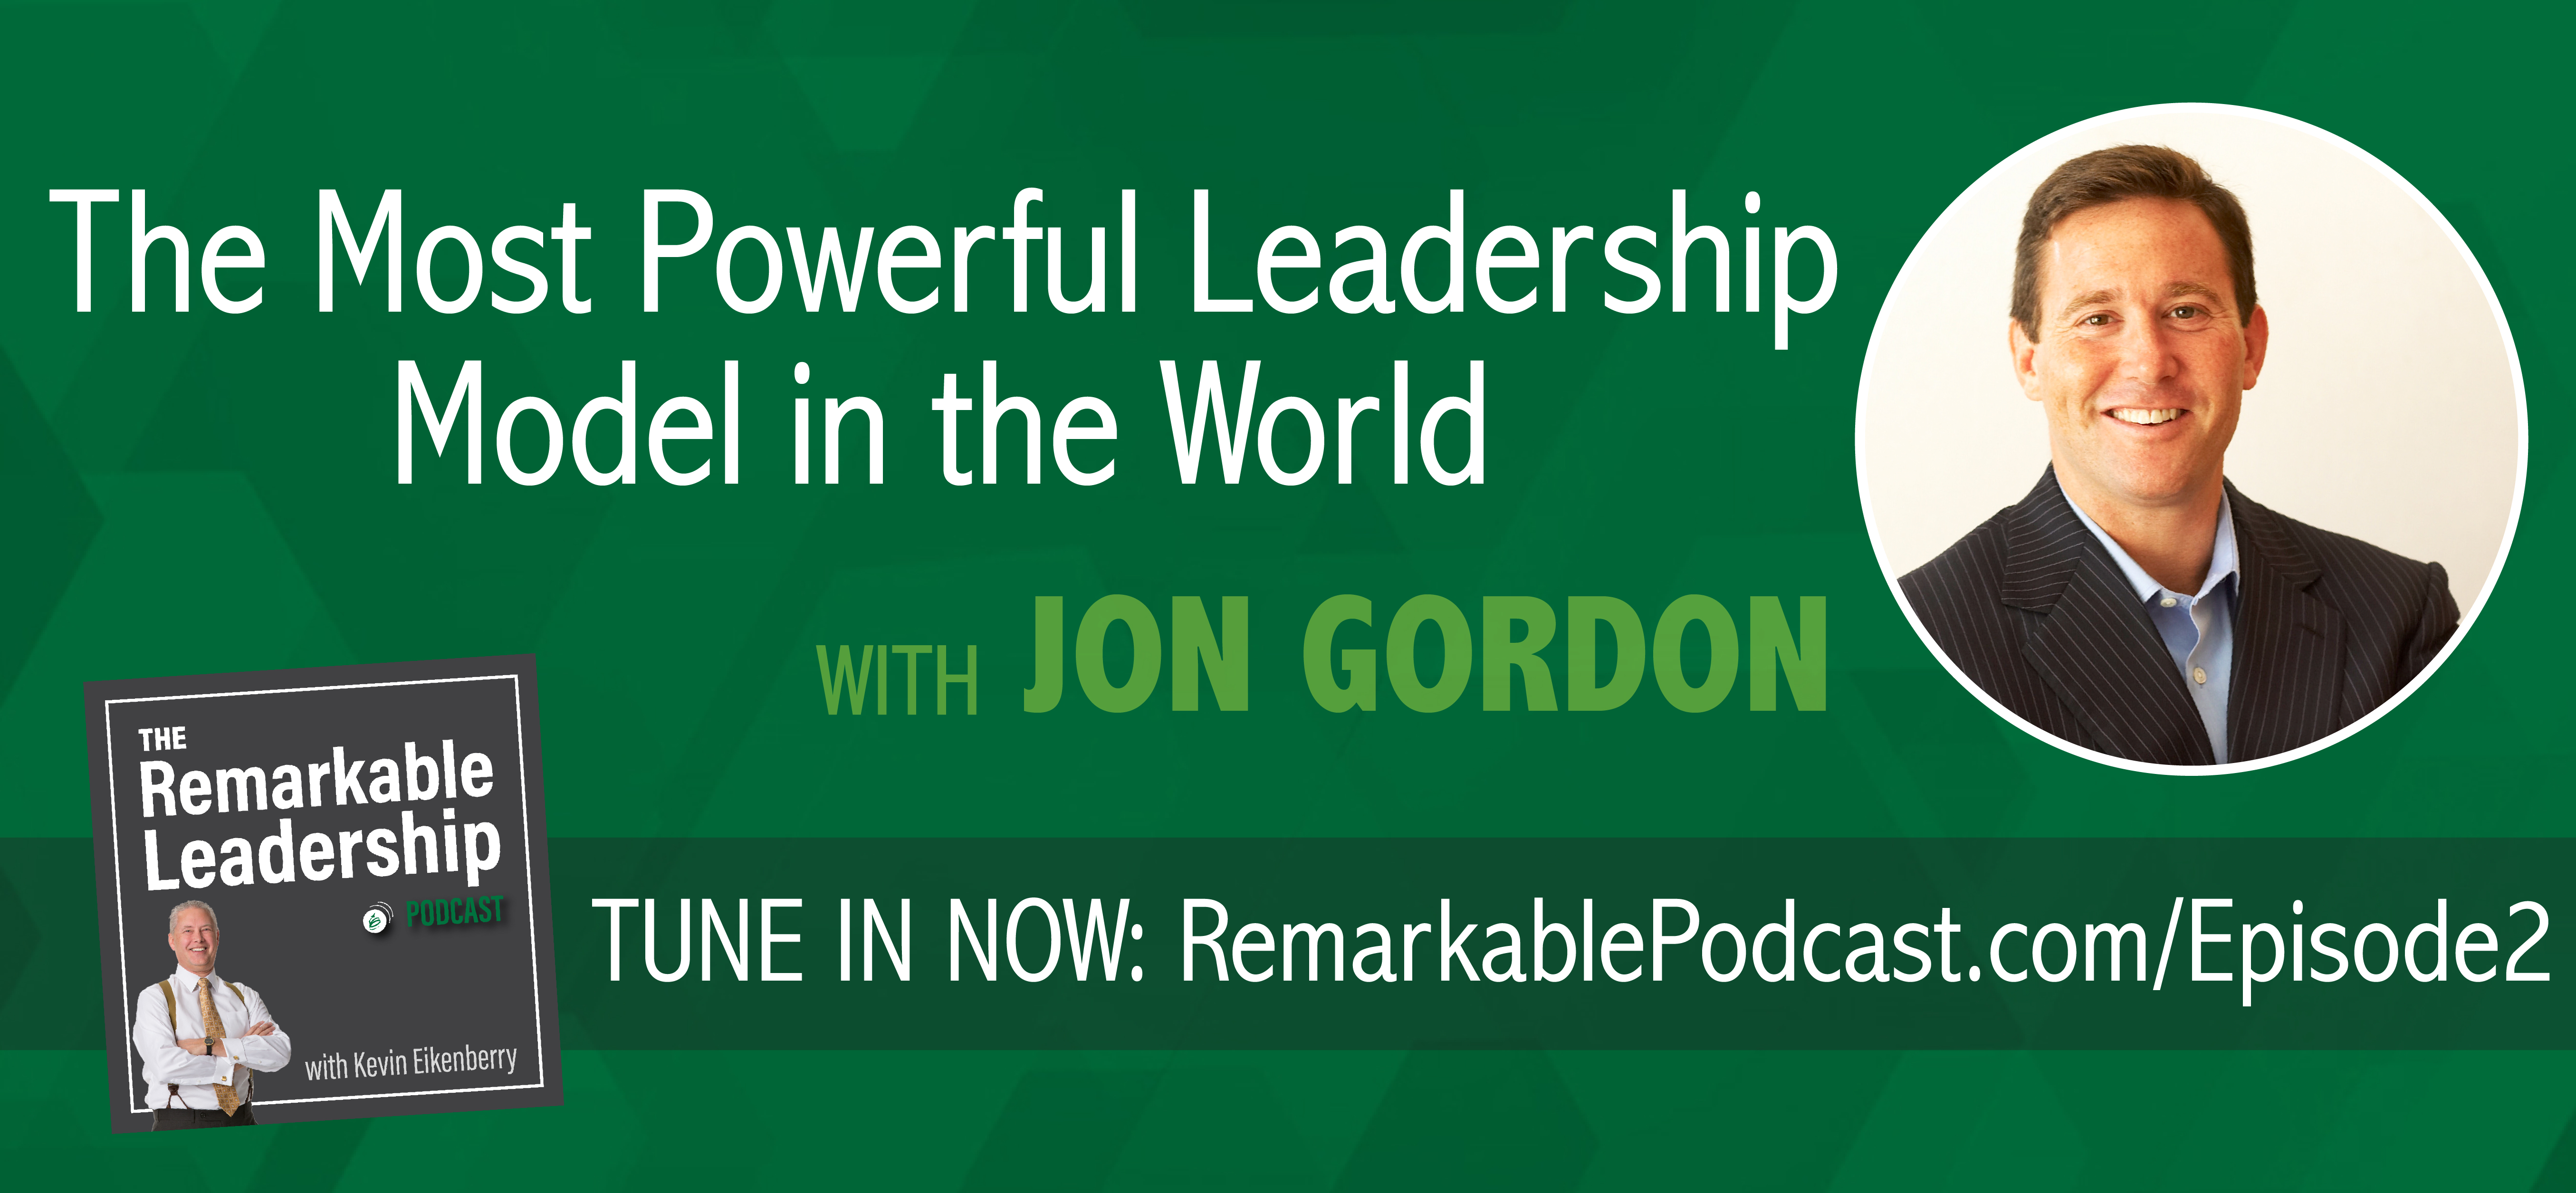 The Remarkable Leadership Podcast - Episode 2: The Most Powerful Leadership Model in the World with Jon Gordon